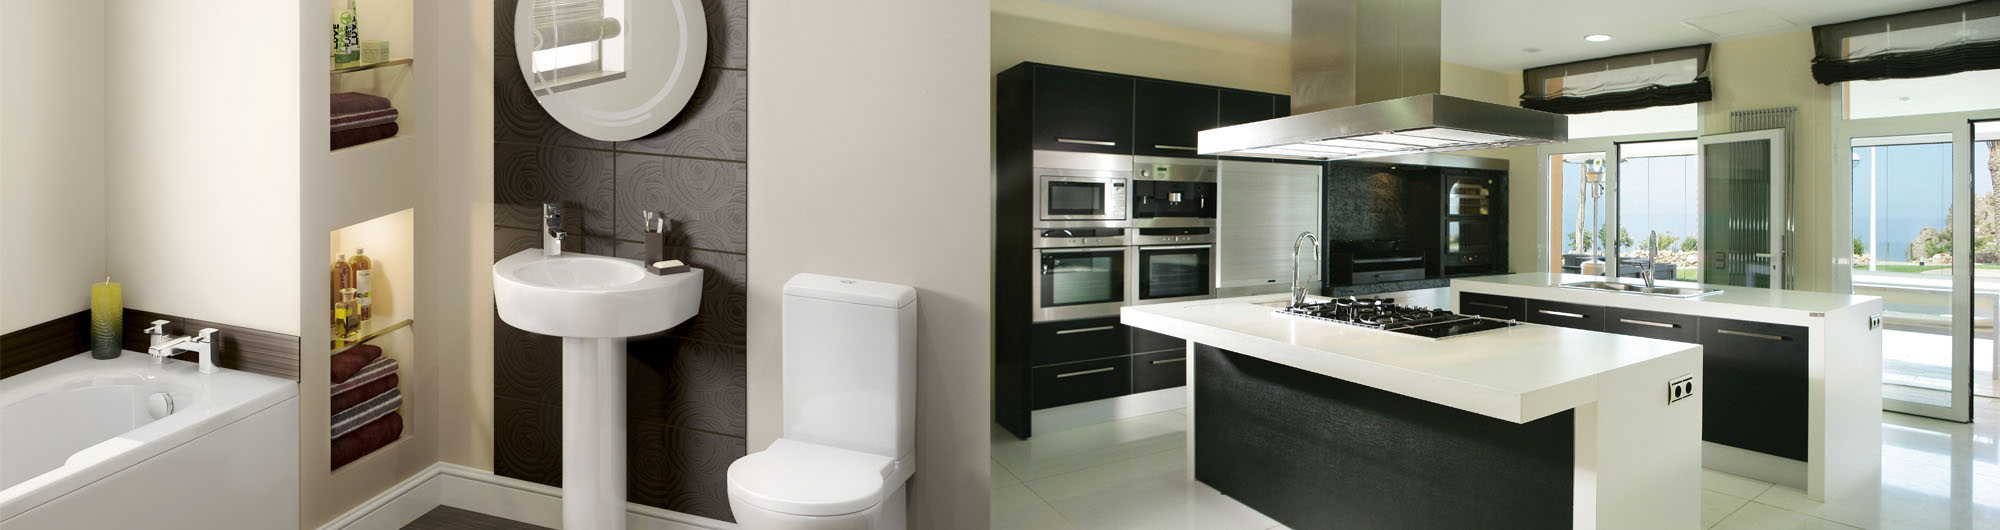 Bath and Kitchen - East Coast Construction and Remodeling Inc.